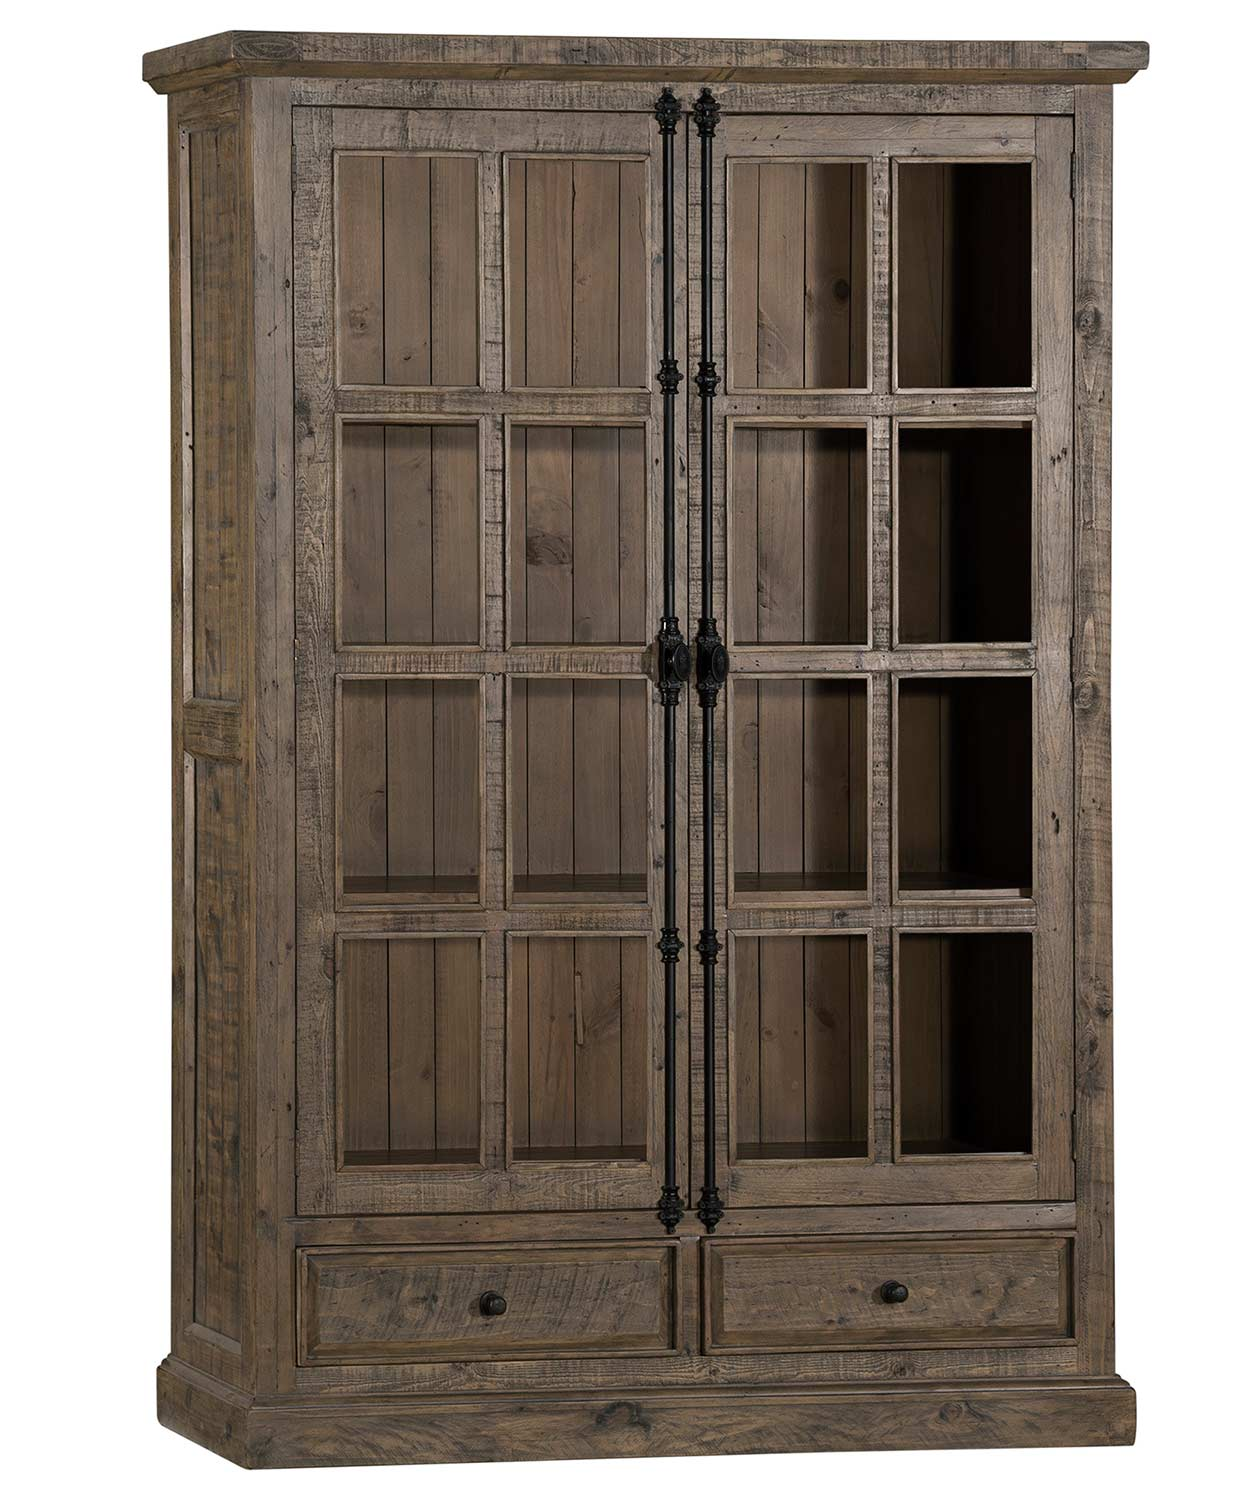 Hillsdale Tuscan Retreat Double Door Cabinet Aged Gray 5845 1074w